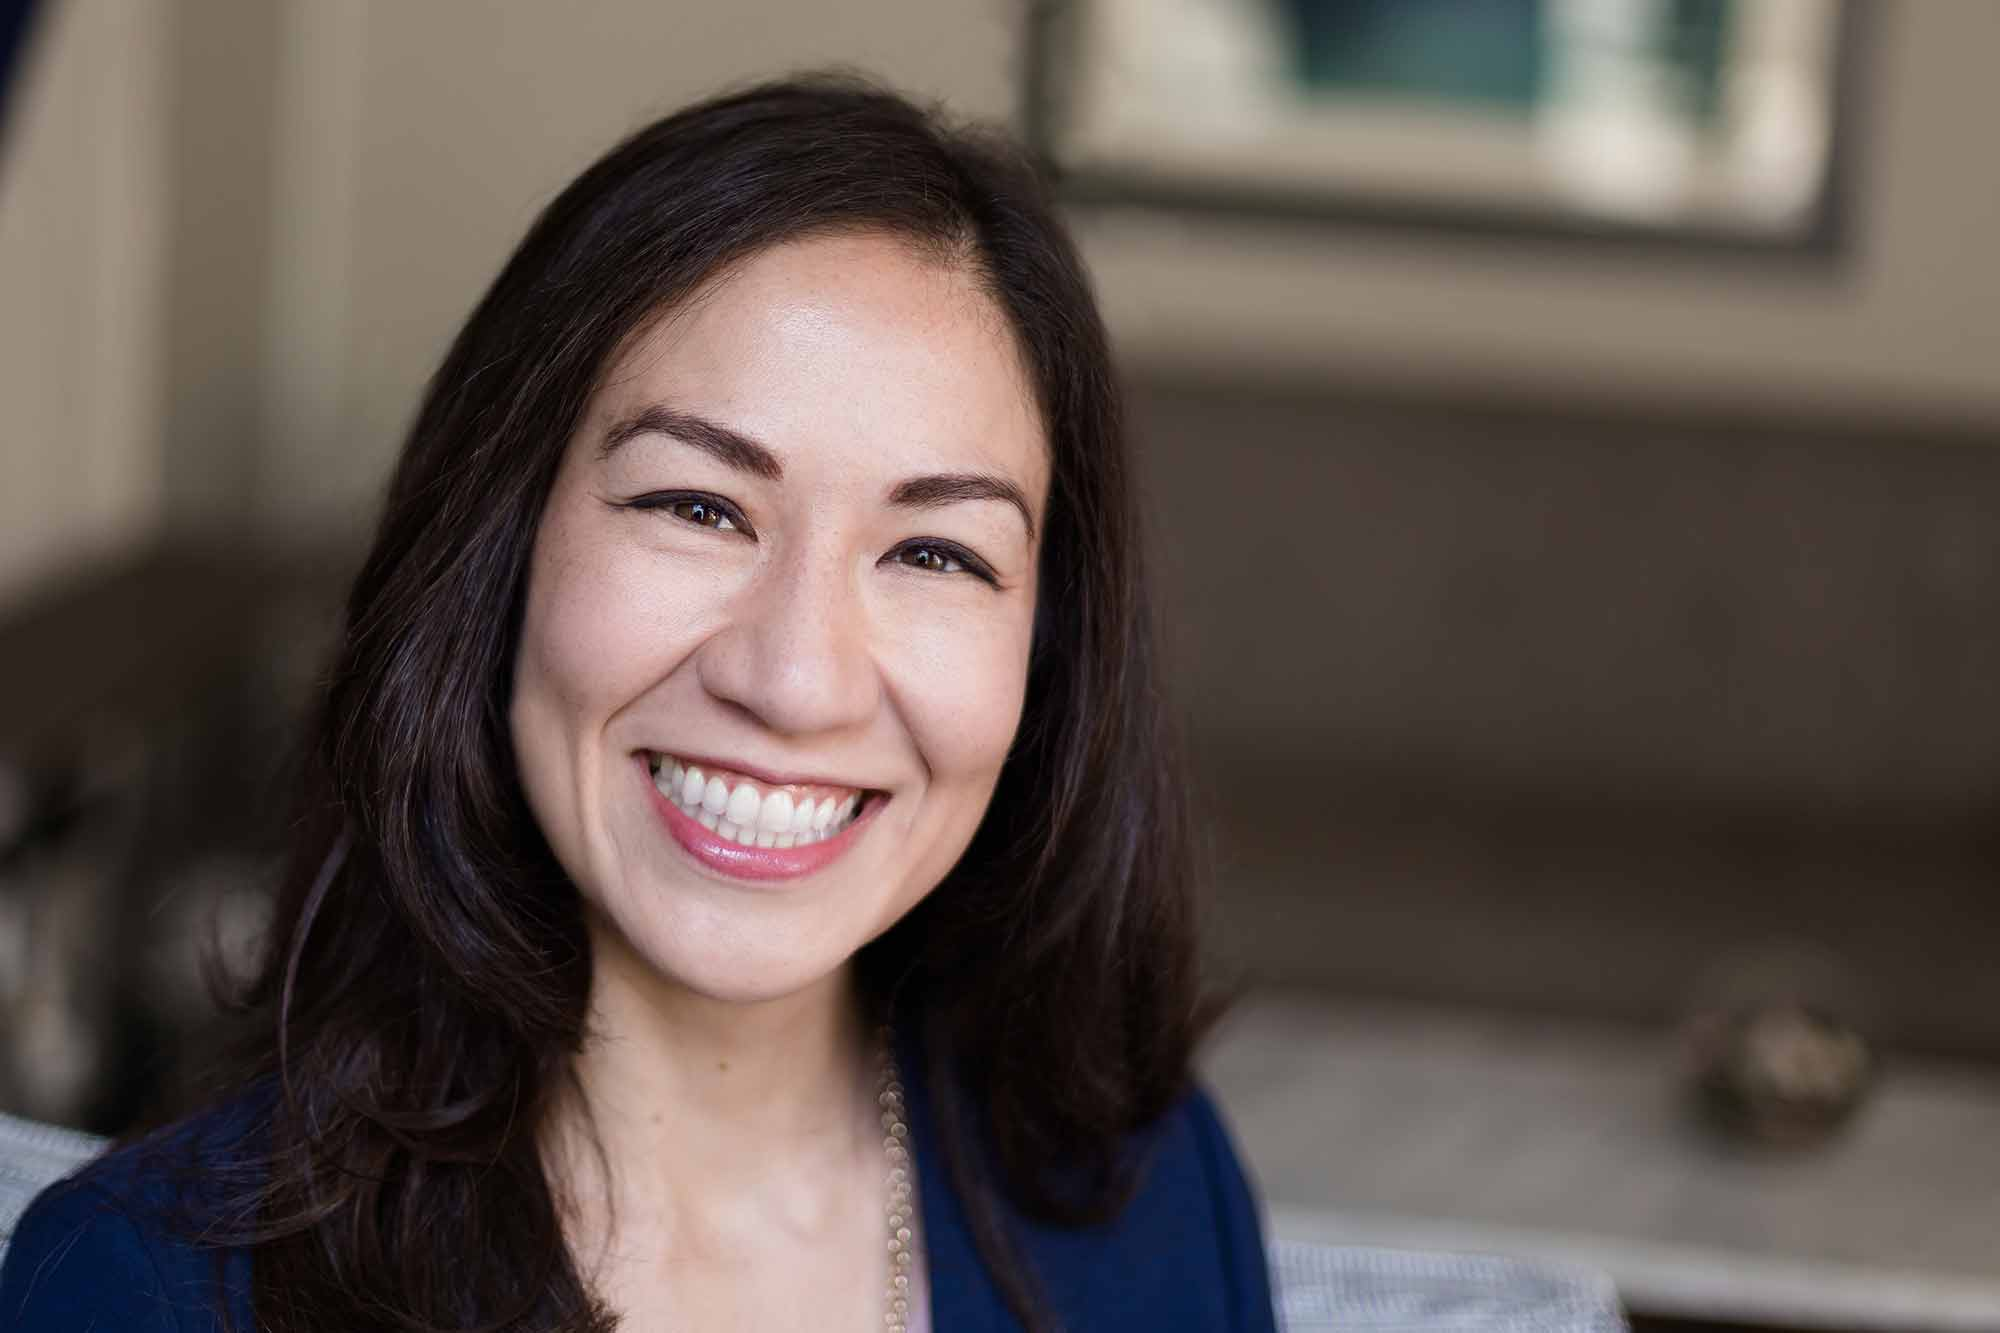 sarah-suzuki-chicago-compass-clinical-director-alcohol-counselor-7